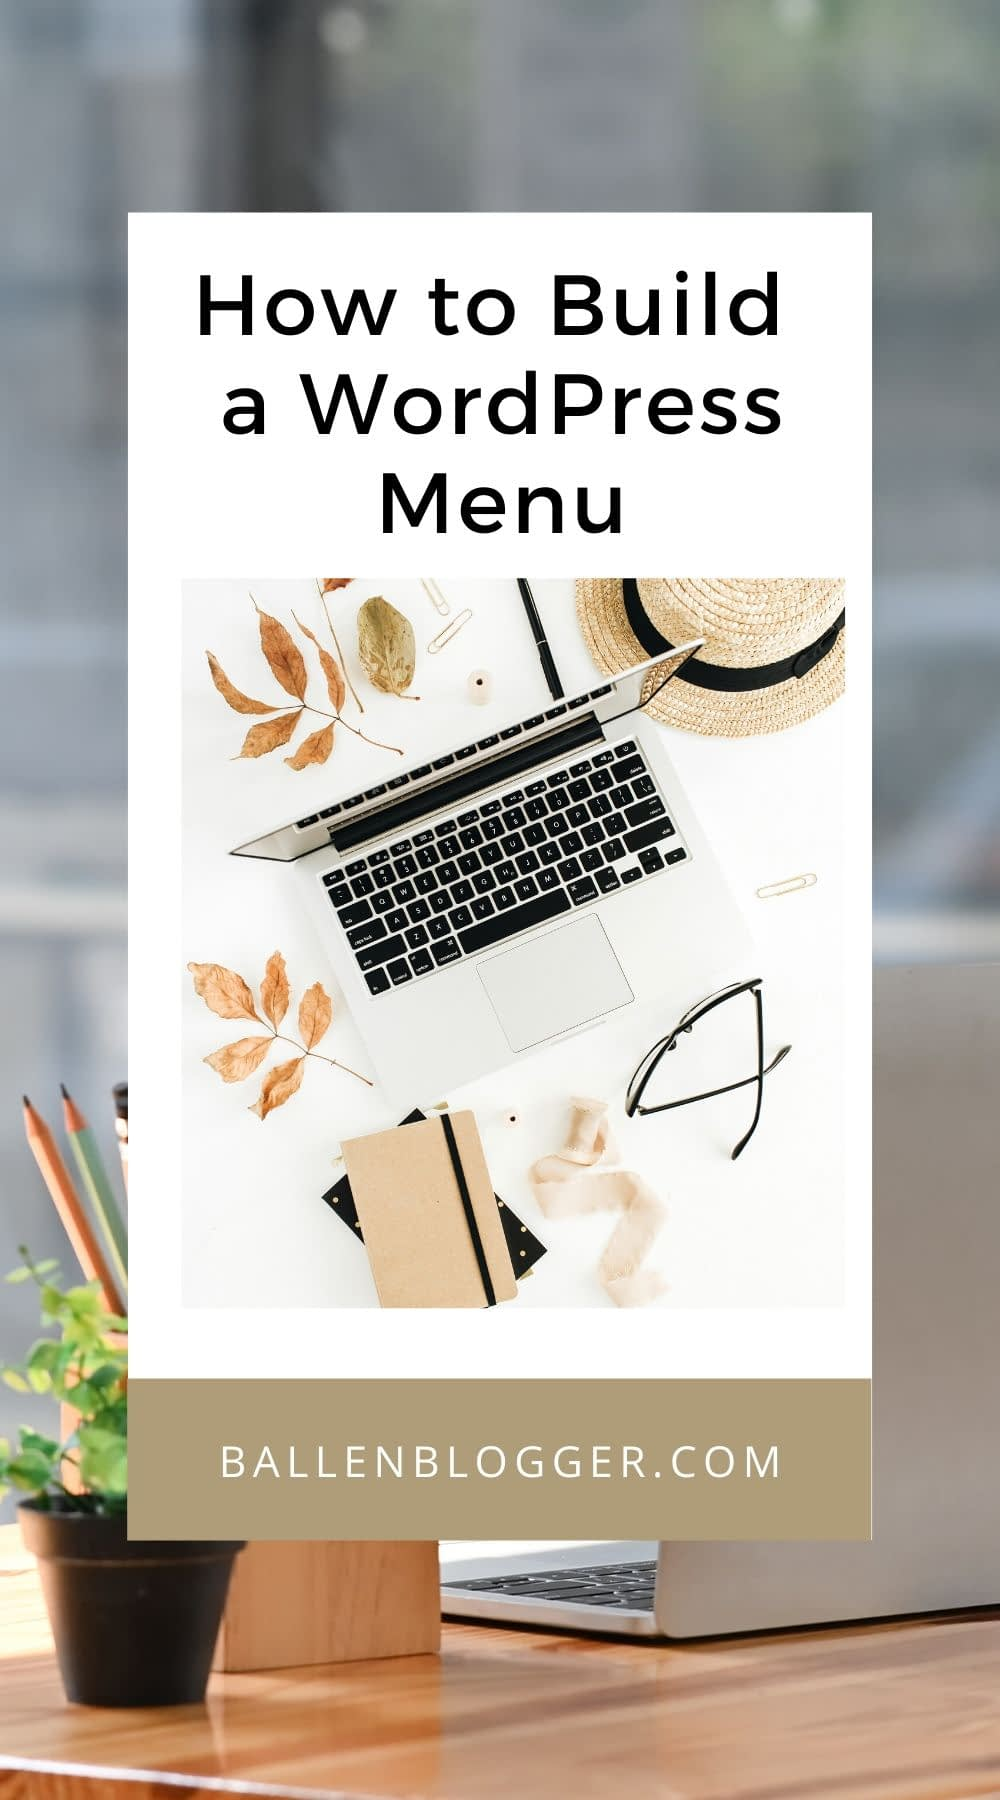 This guide will help you create your WordPress Menus including the header menu and footer menu, drop-down menu, and more.